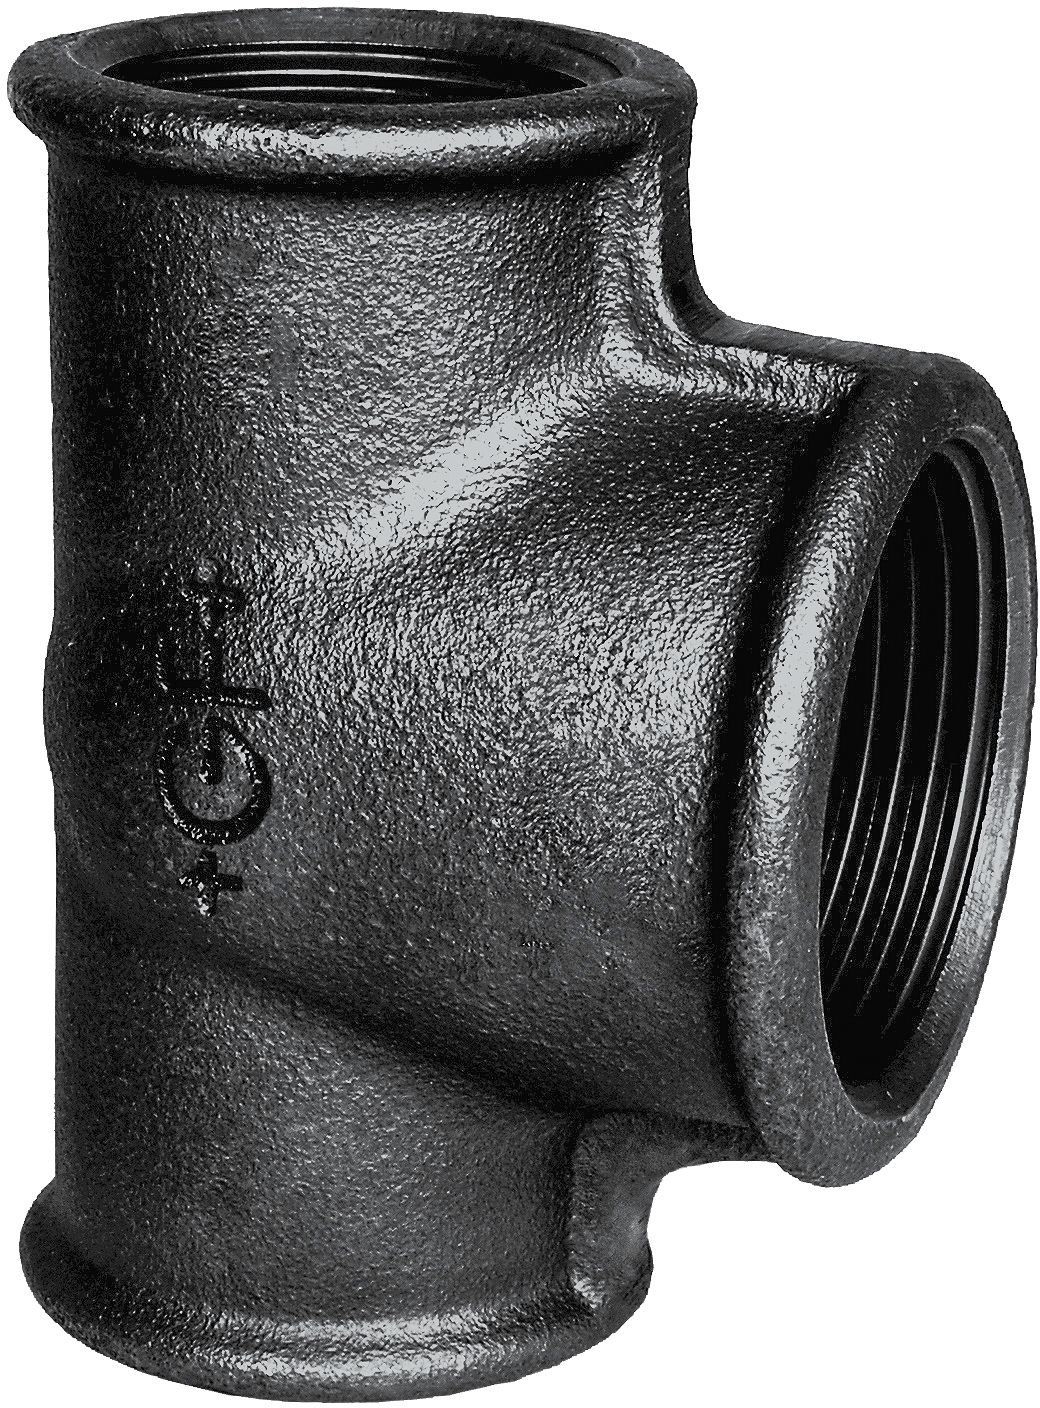 "GAZ T REDUCTION NR 130 3/4""-4/4""-3/4"""